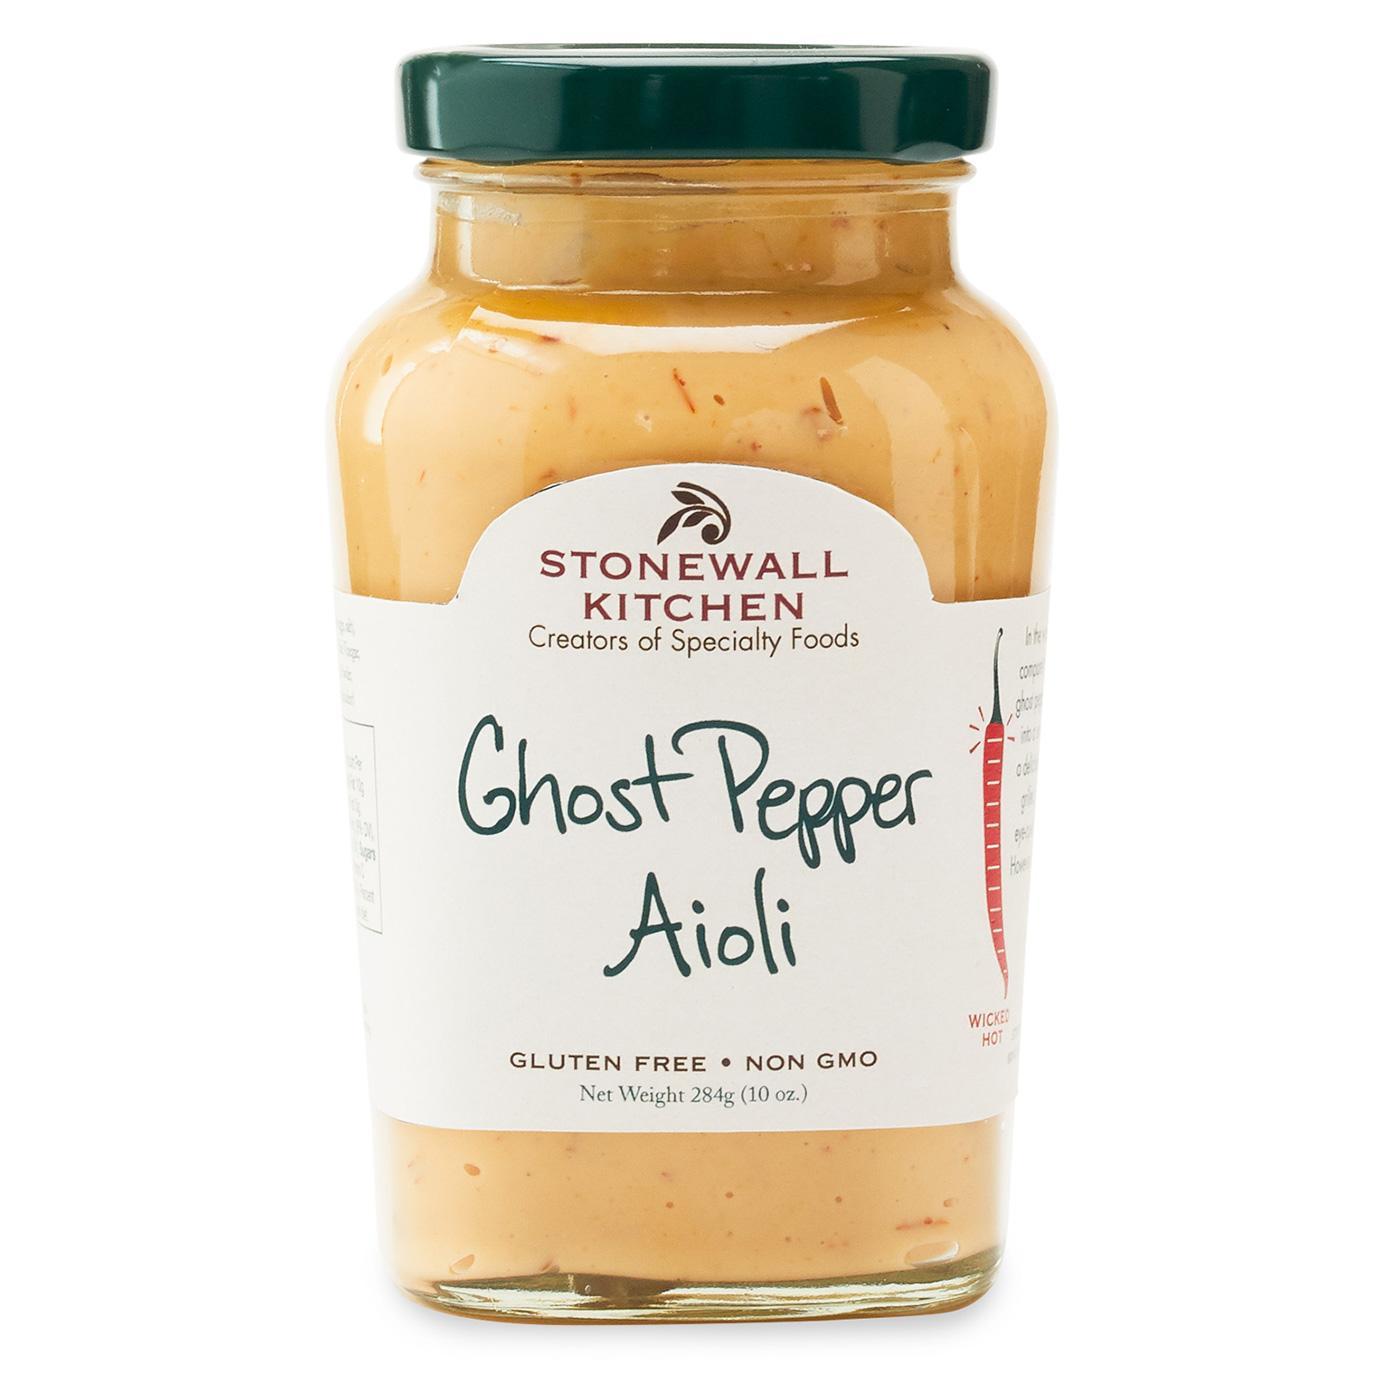 jar of stonewall kitchen ghost pepper aioli 10 oz jar 284g made in maine